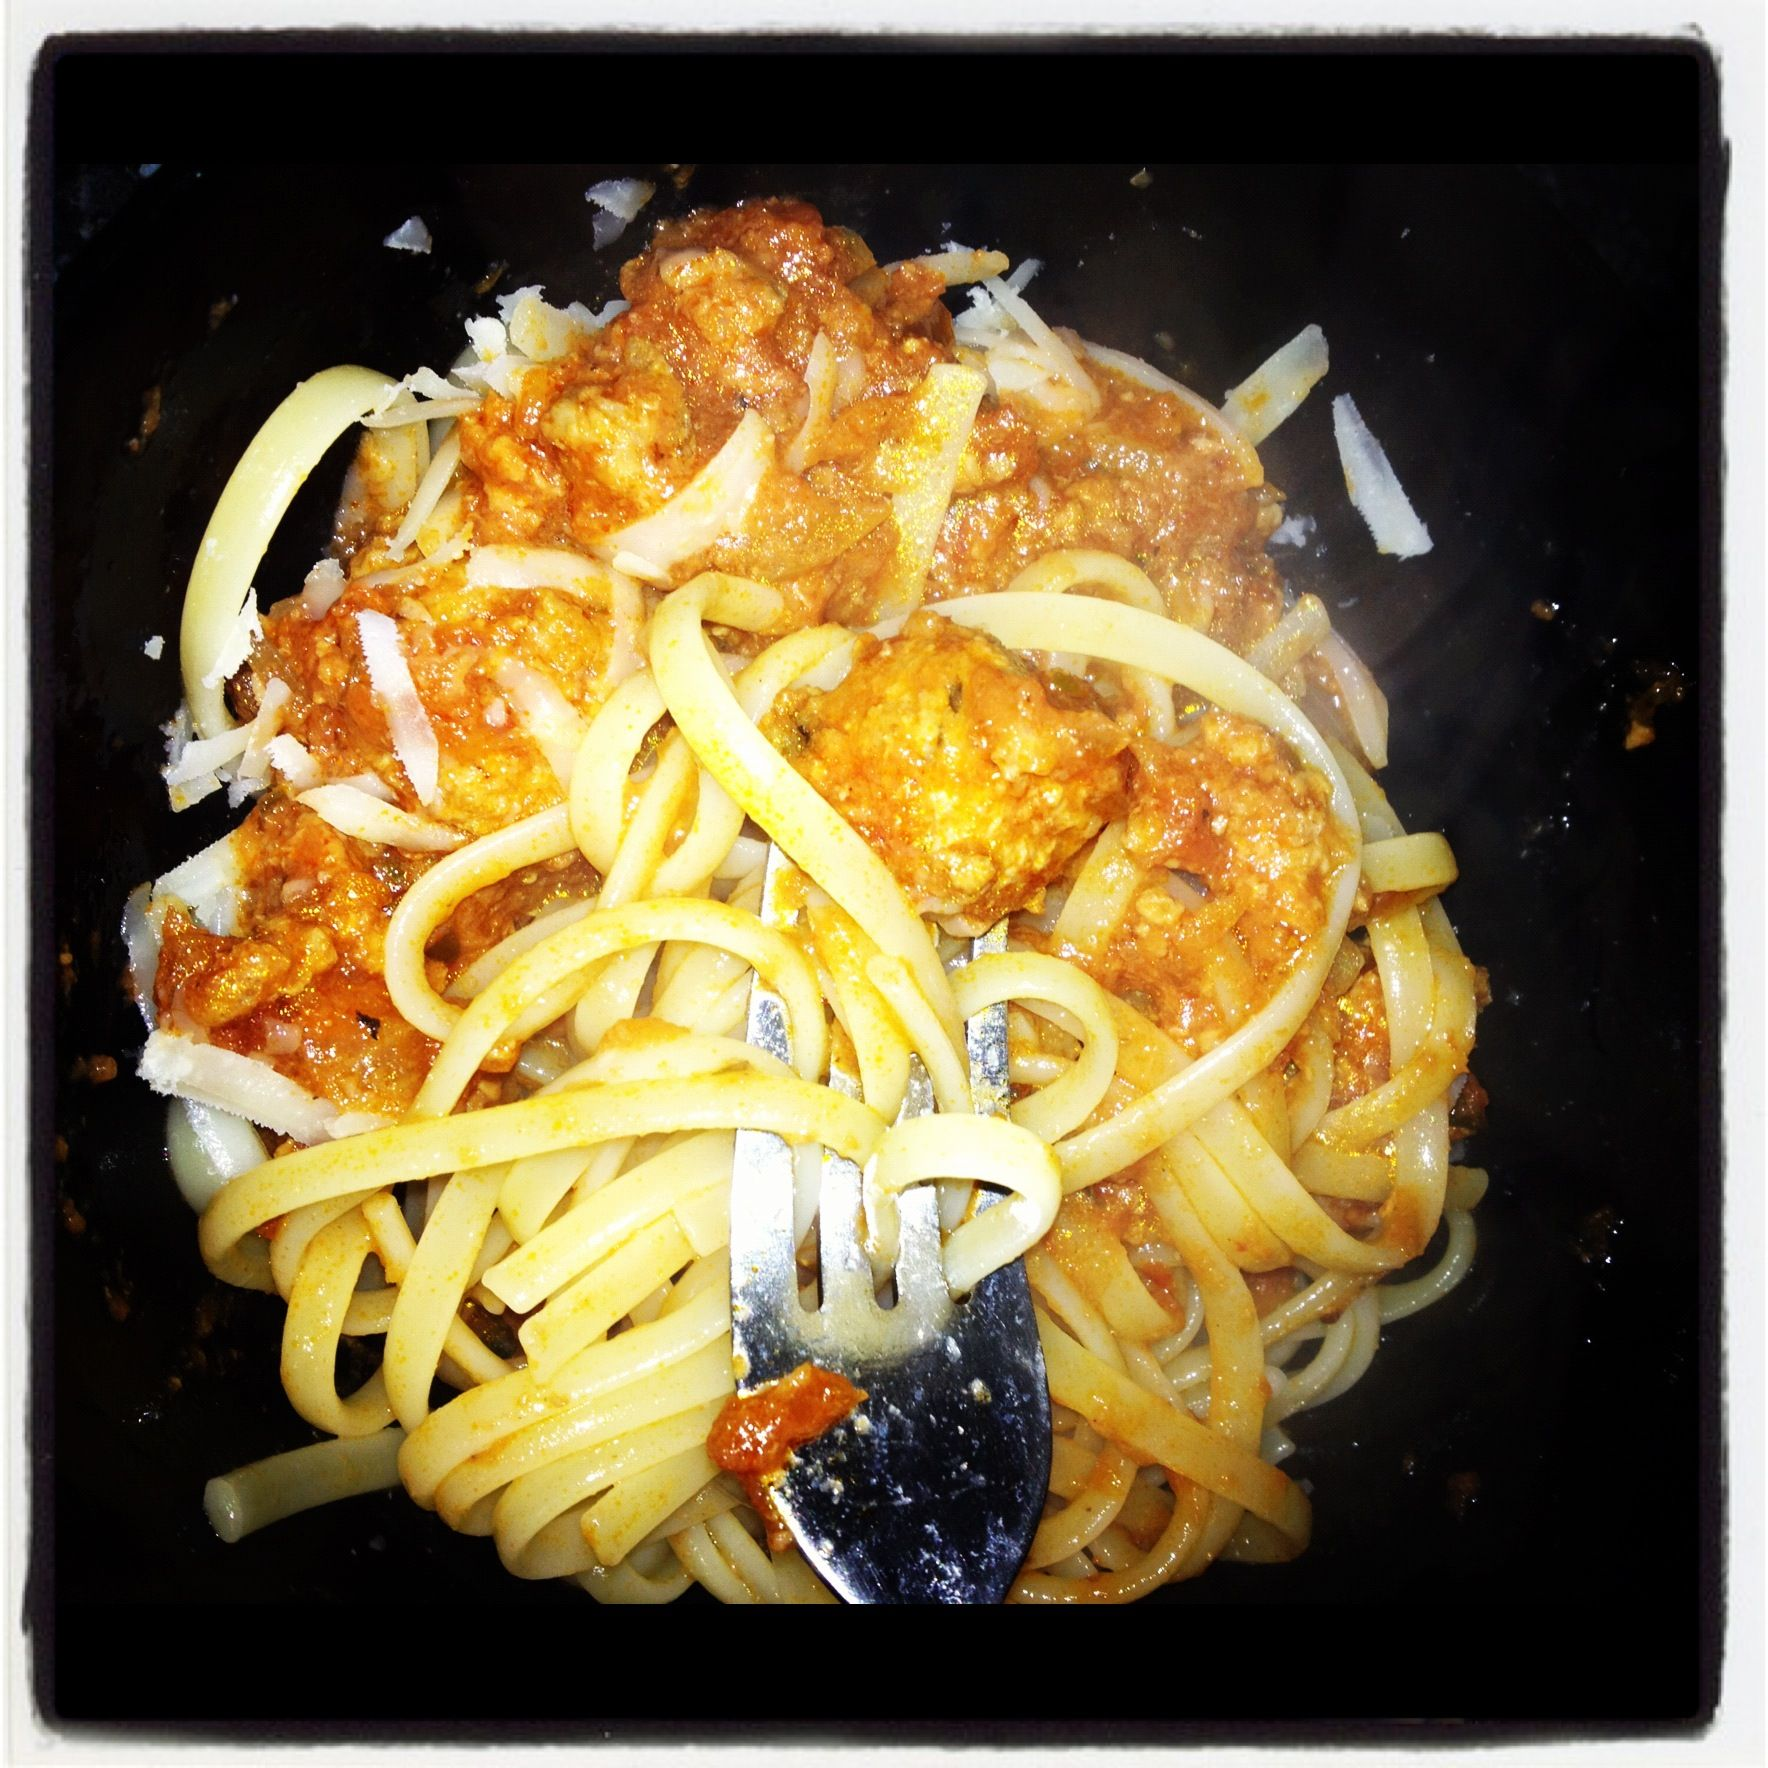 Turkey meatballs with linguine